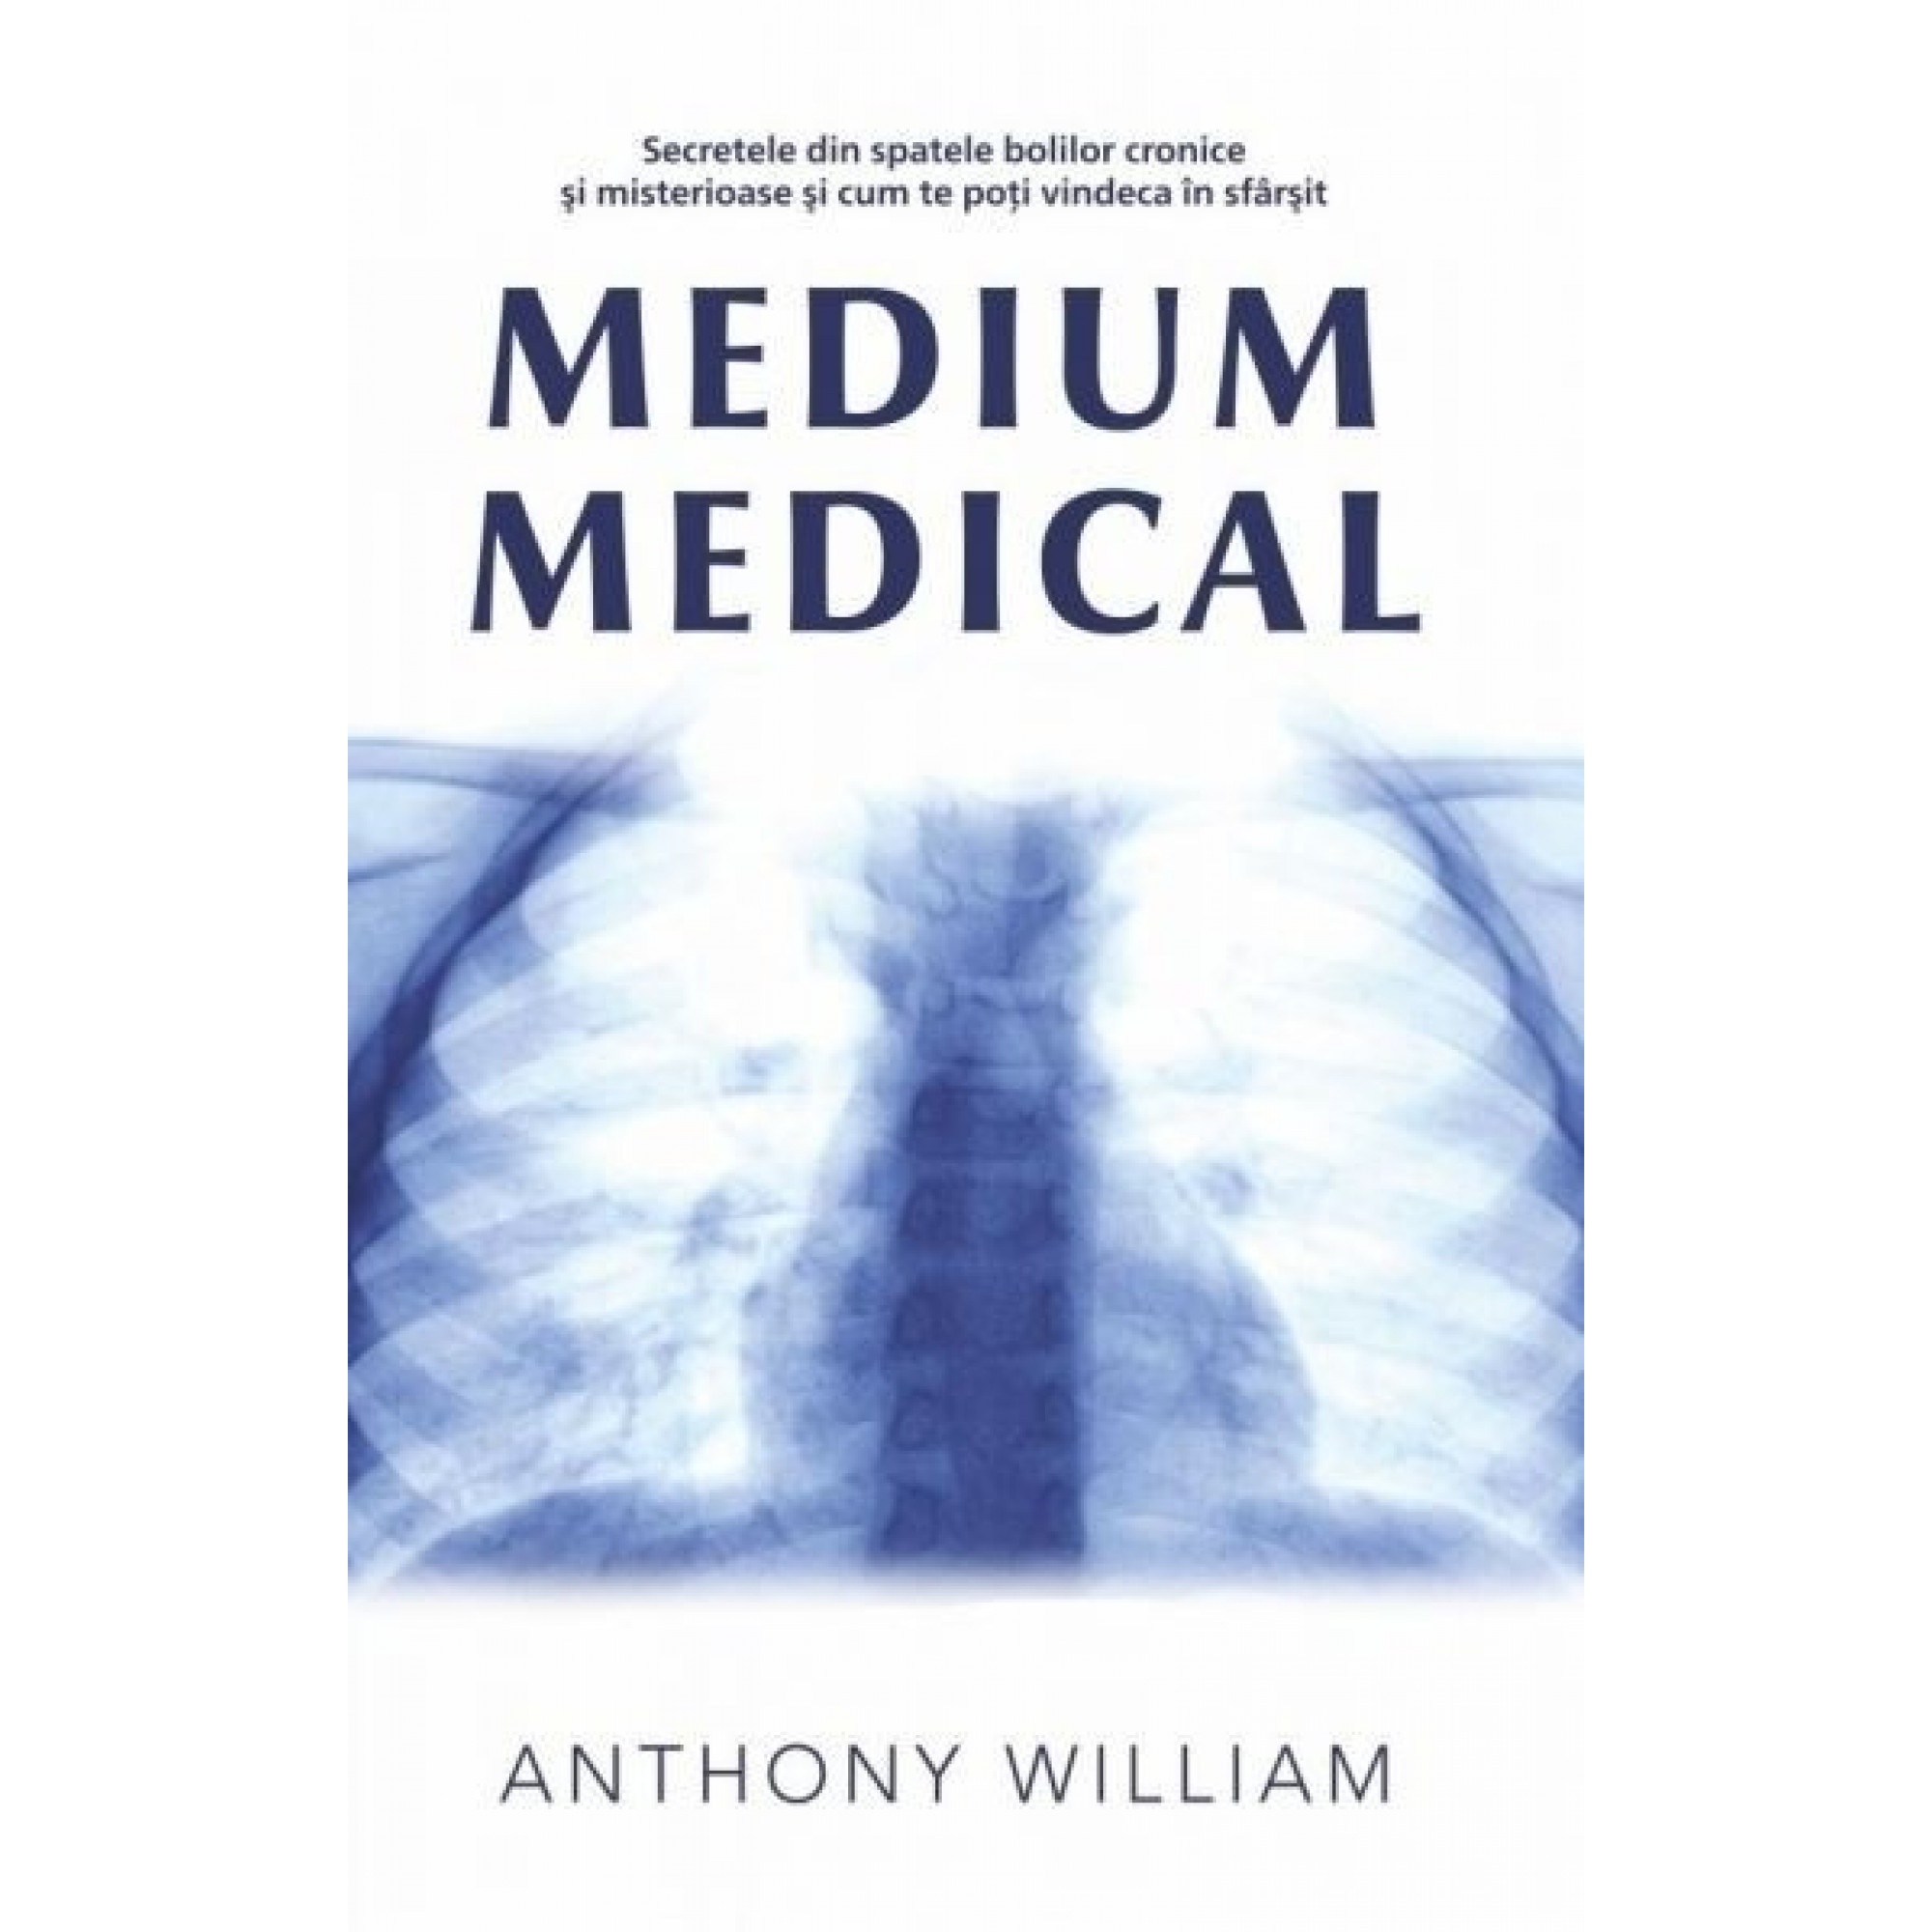 Medium medical; Anthony William